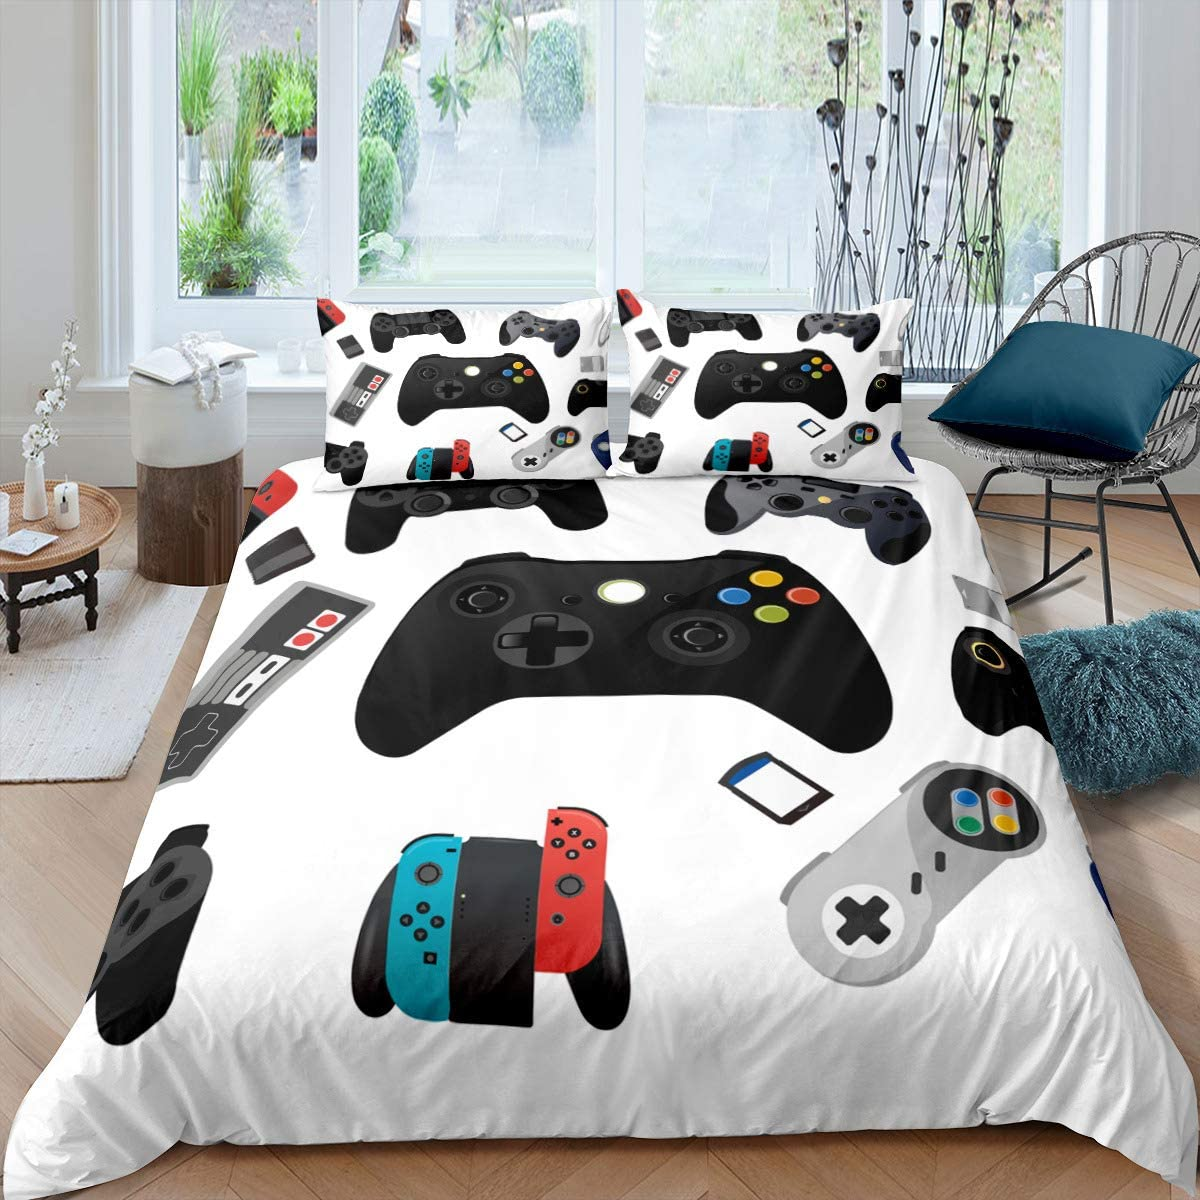 Gamer Video Game Bed Sheet Set Duvet Gamepad Game Cover for Kids Boys Girls Teens Novelty Modern Game Controller Ultra Microfiber Bedding Set Decor 3 Pcs (1 Duvet Cover + 2 Pillowcases) King 104x90